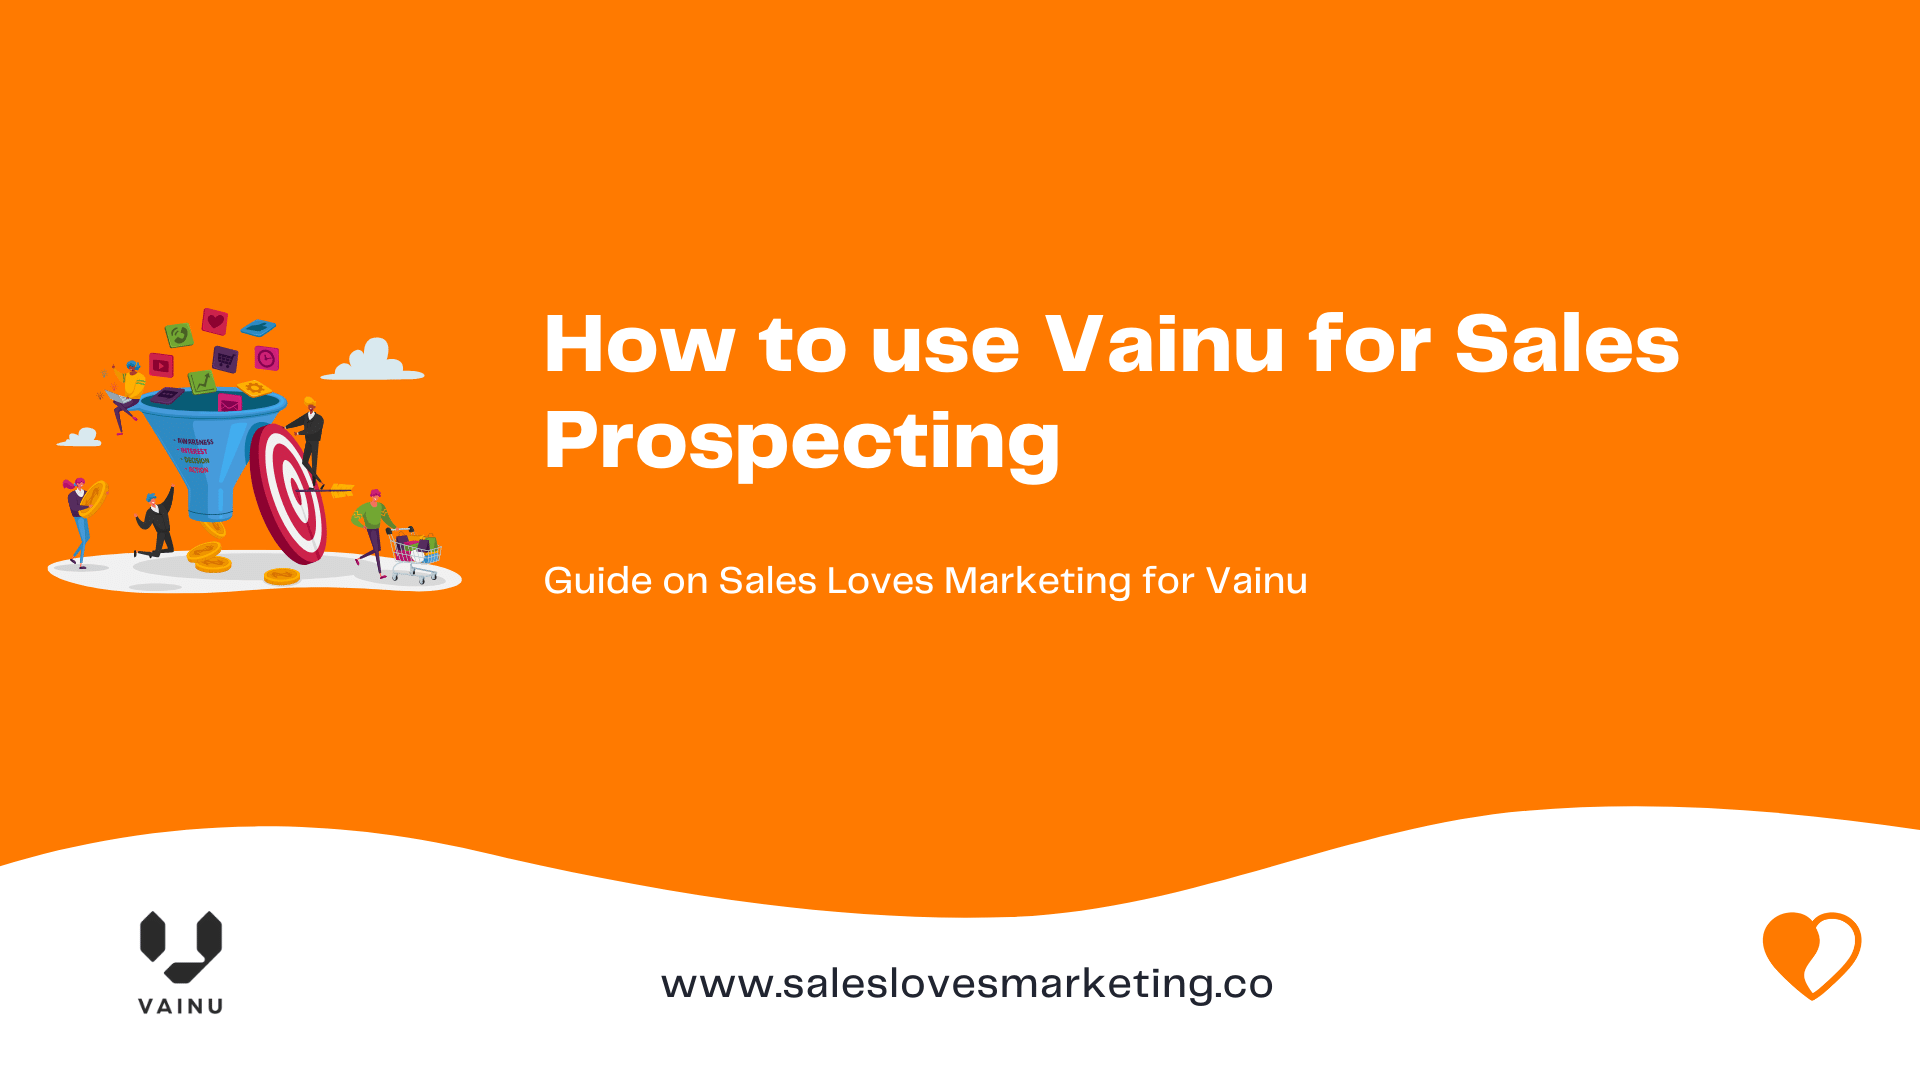 How to use Vainu for sales prospecting